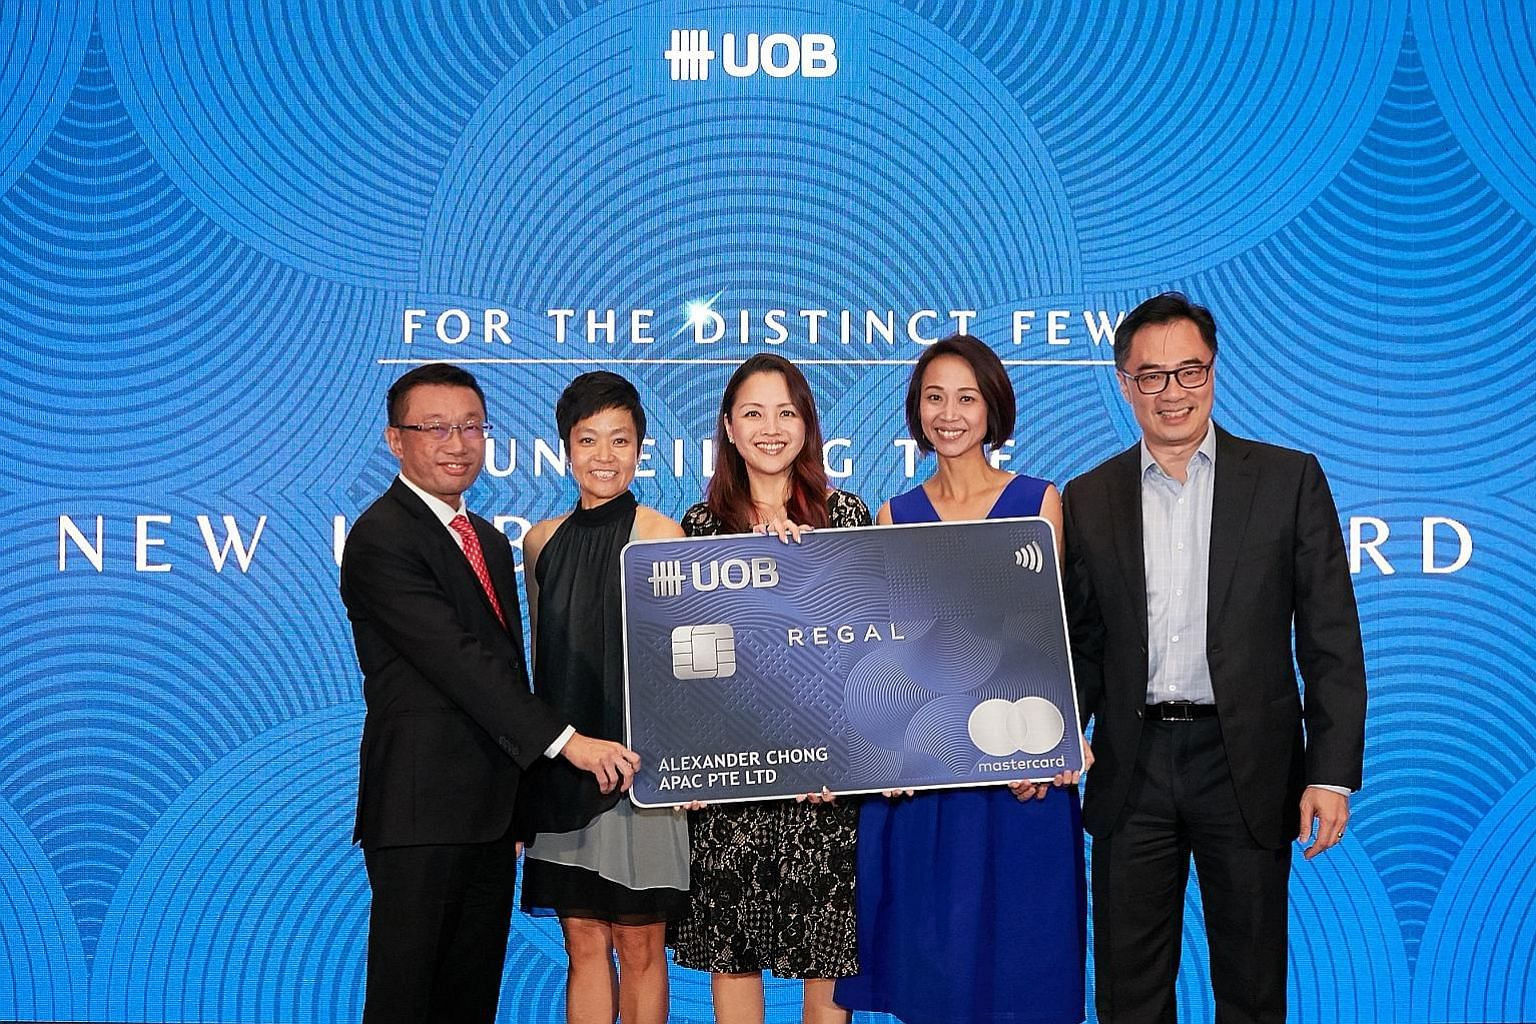 (From left) Mr Choo Kee Siong, UOB head of industry group, commercial banking; Mastercard country manager Deborah Heng; UOB head of personal financial services Jacquelyn Tan; UOB head of cards and payments Choo Wan Sim; and UOB head of business banki